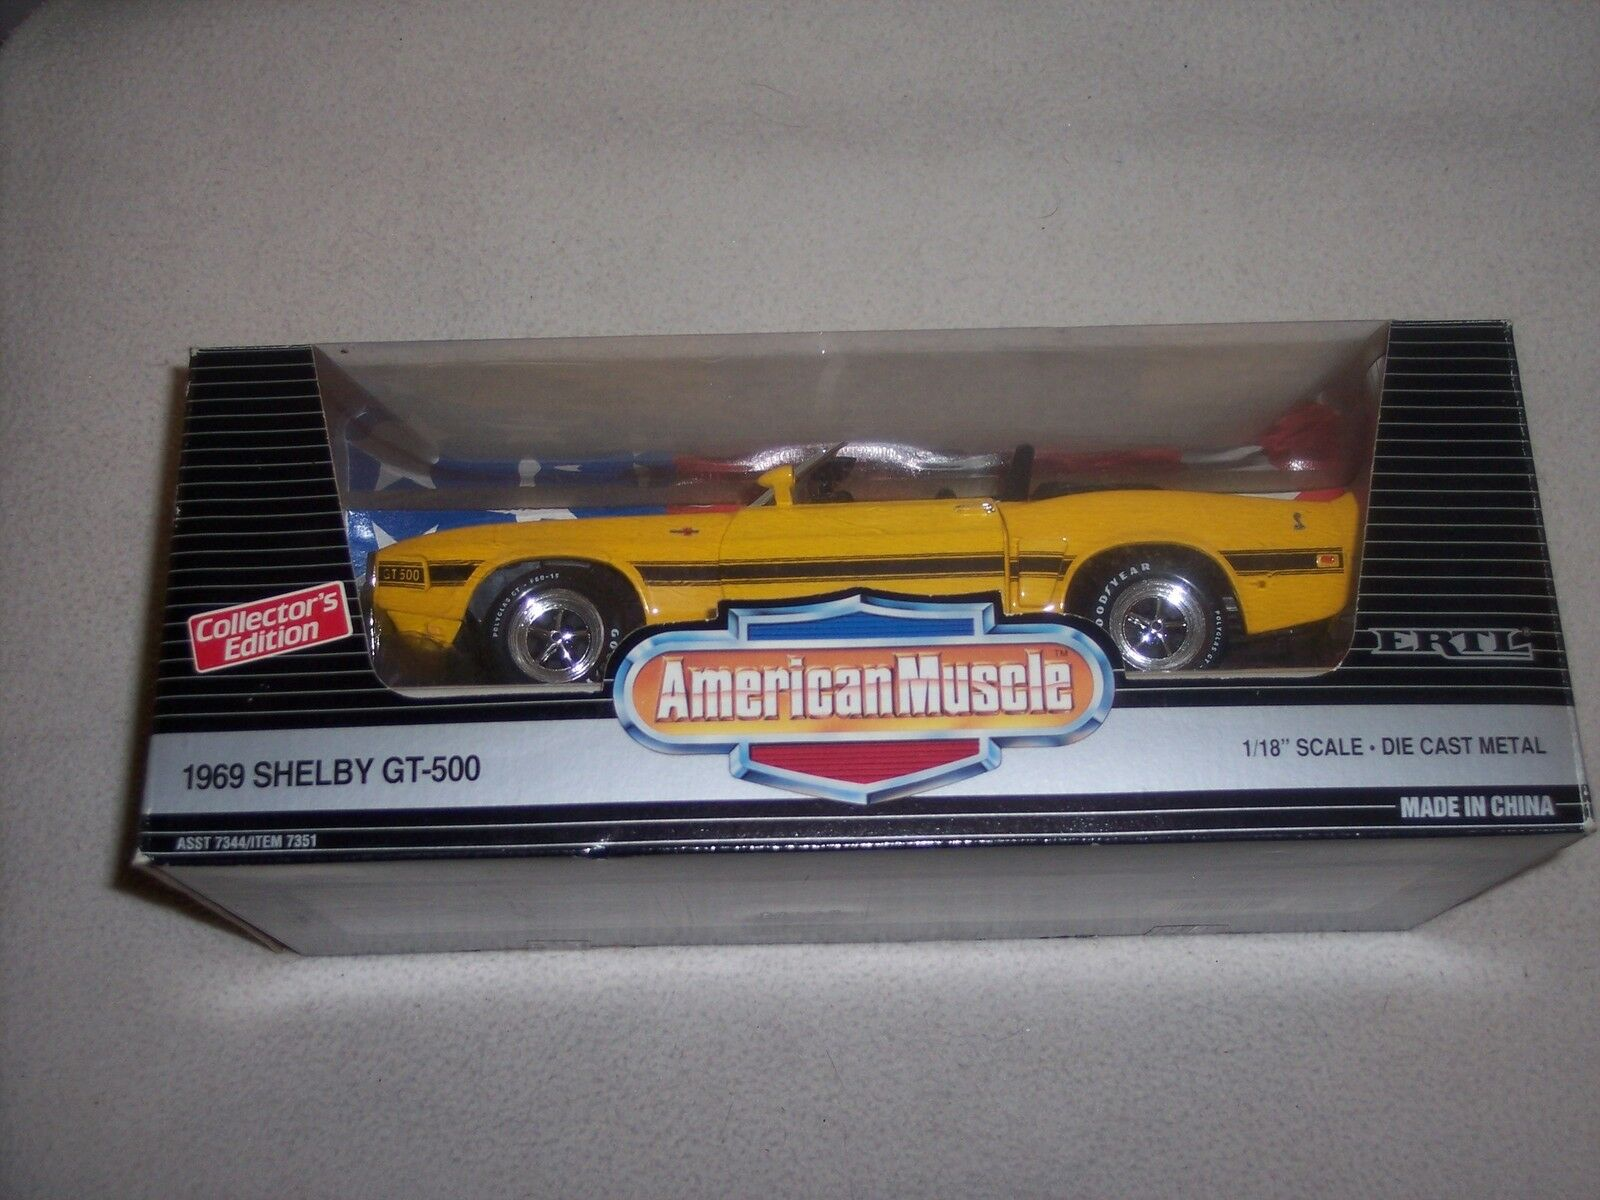 AMERICAN MUSCLE - ERTL- 1969 SHELBY GT-500 - - -  YELLOW DROP TOP - NEW IN BOX 956c35